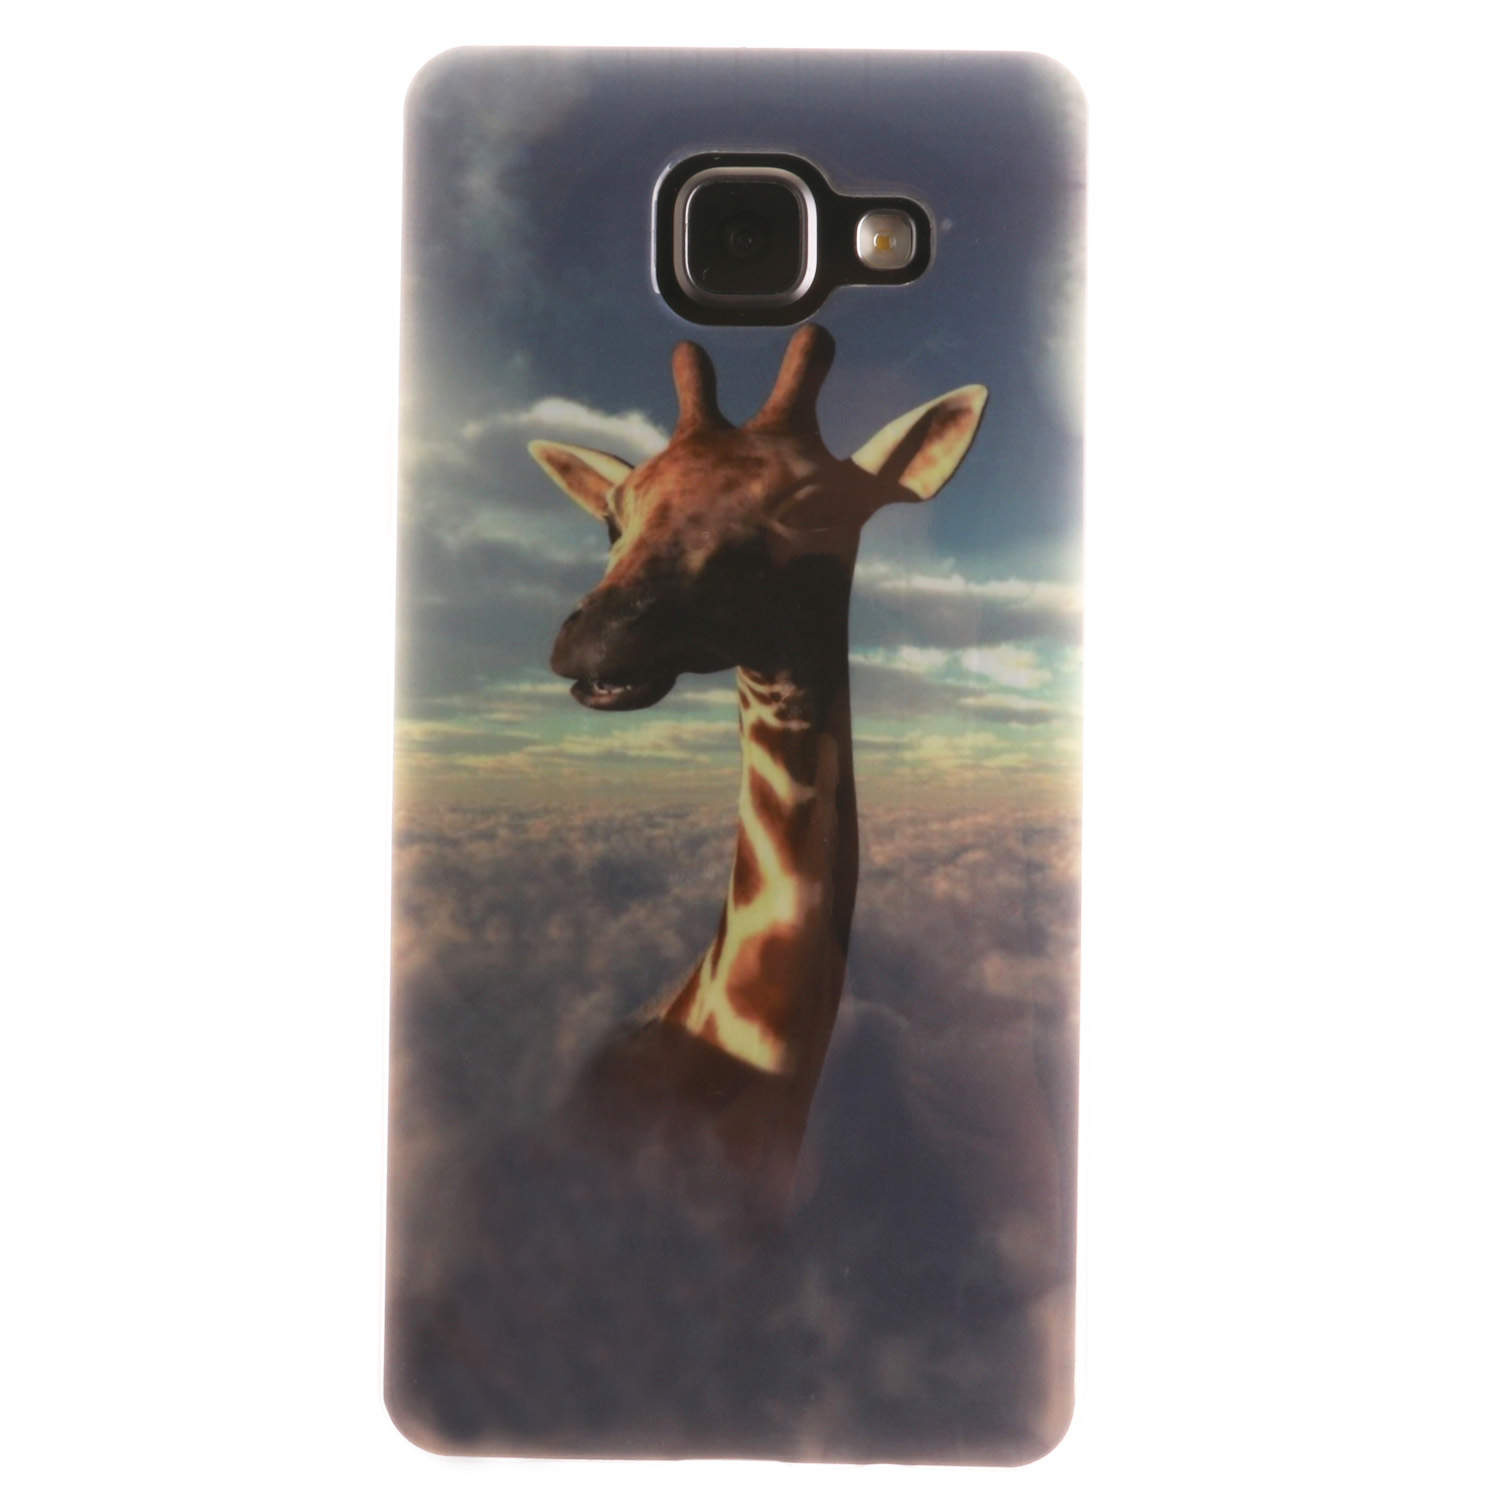 IMD Process Cover For Samsung Galaxy A3 2016 Case Soft Silicone TPU Case For Samsung A3 2016 Cover Phone Protect ShockProof Case